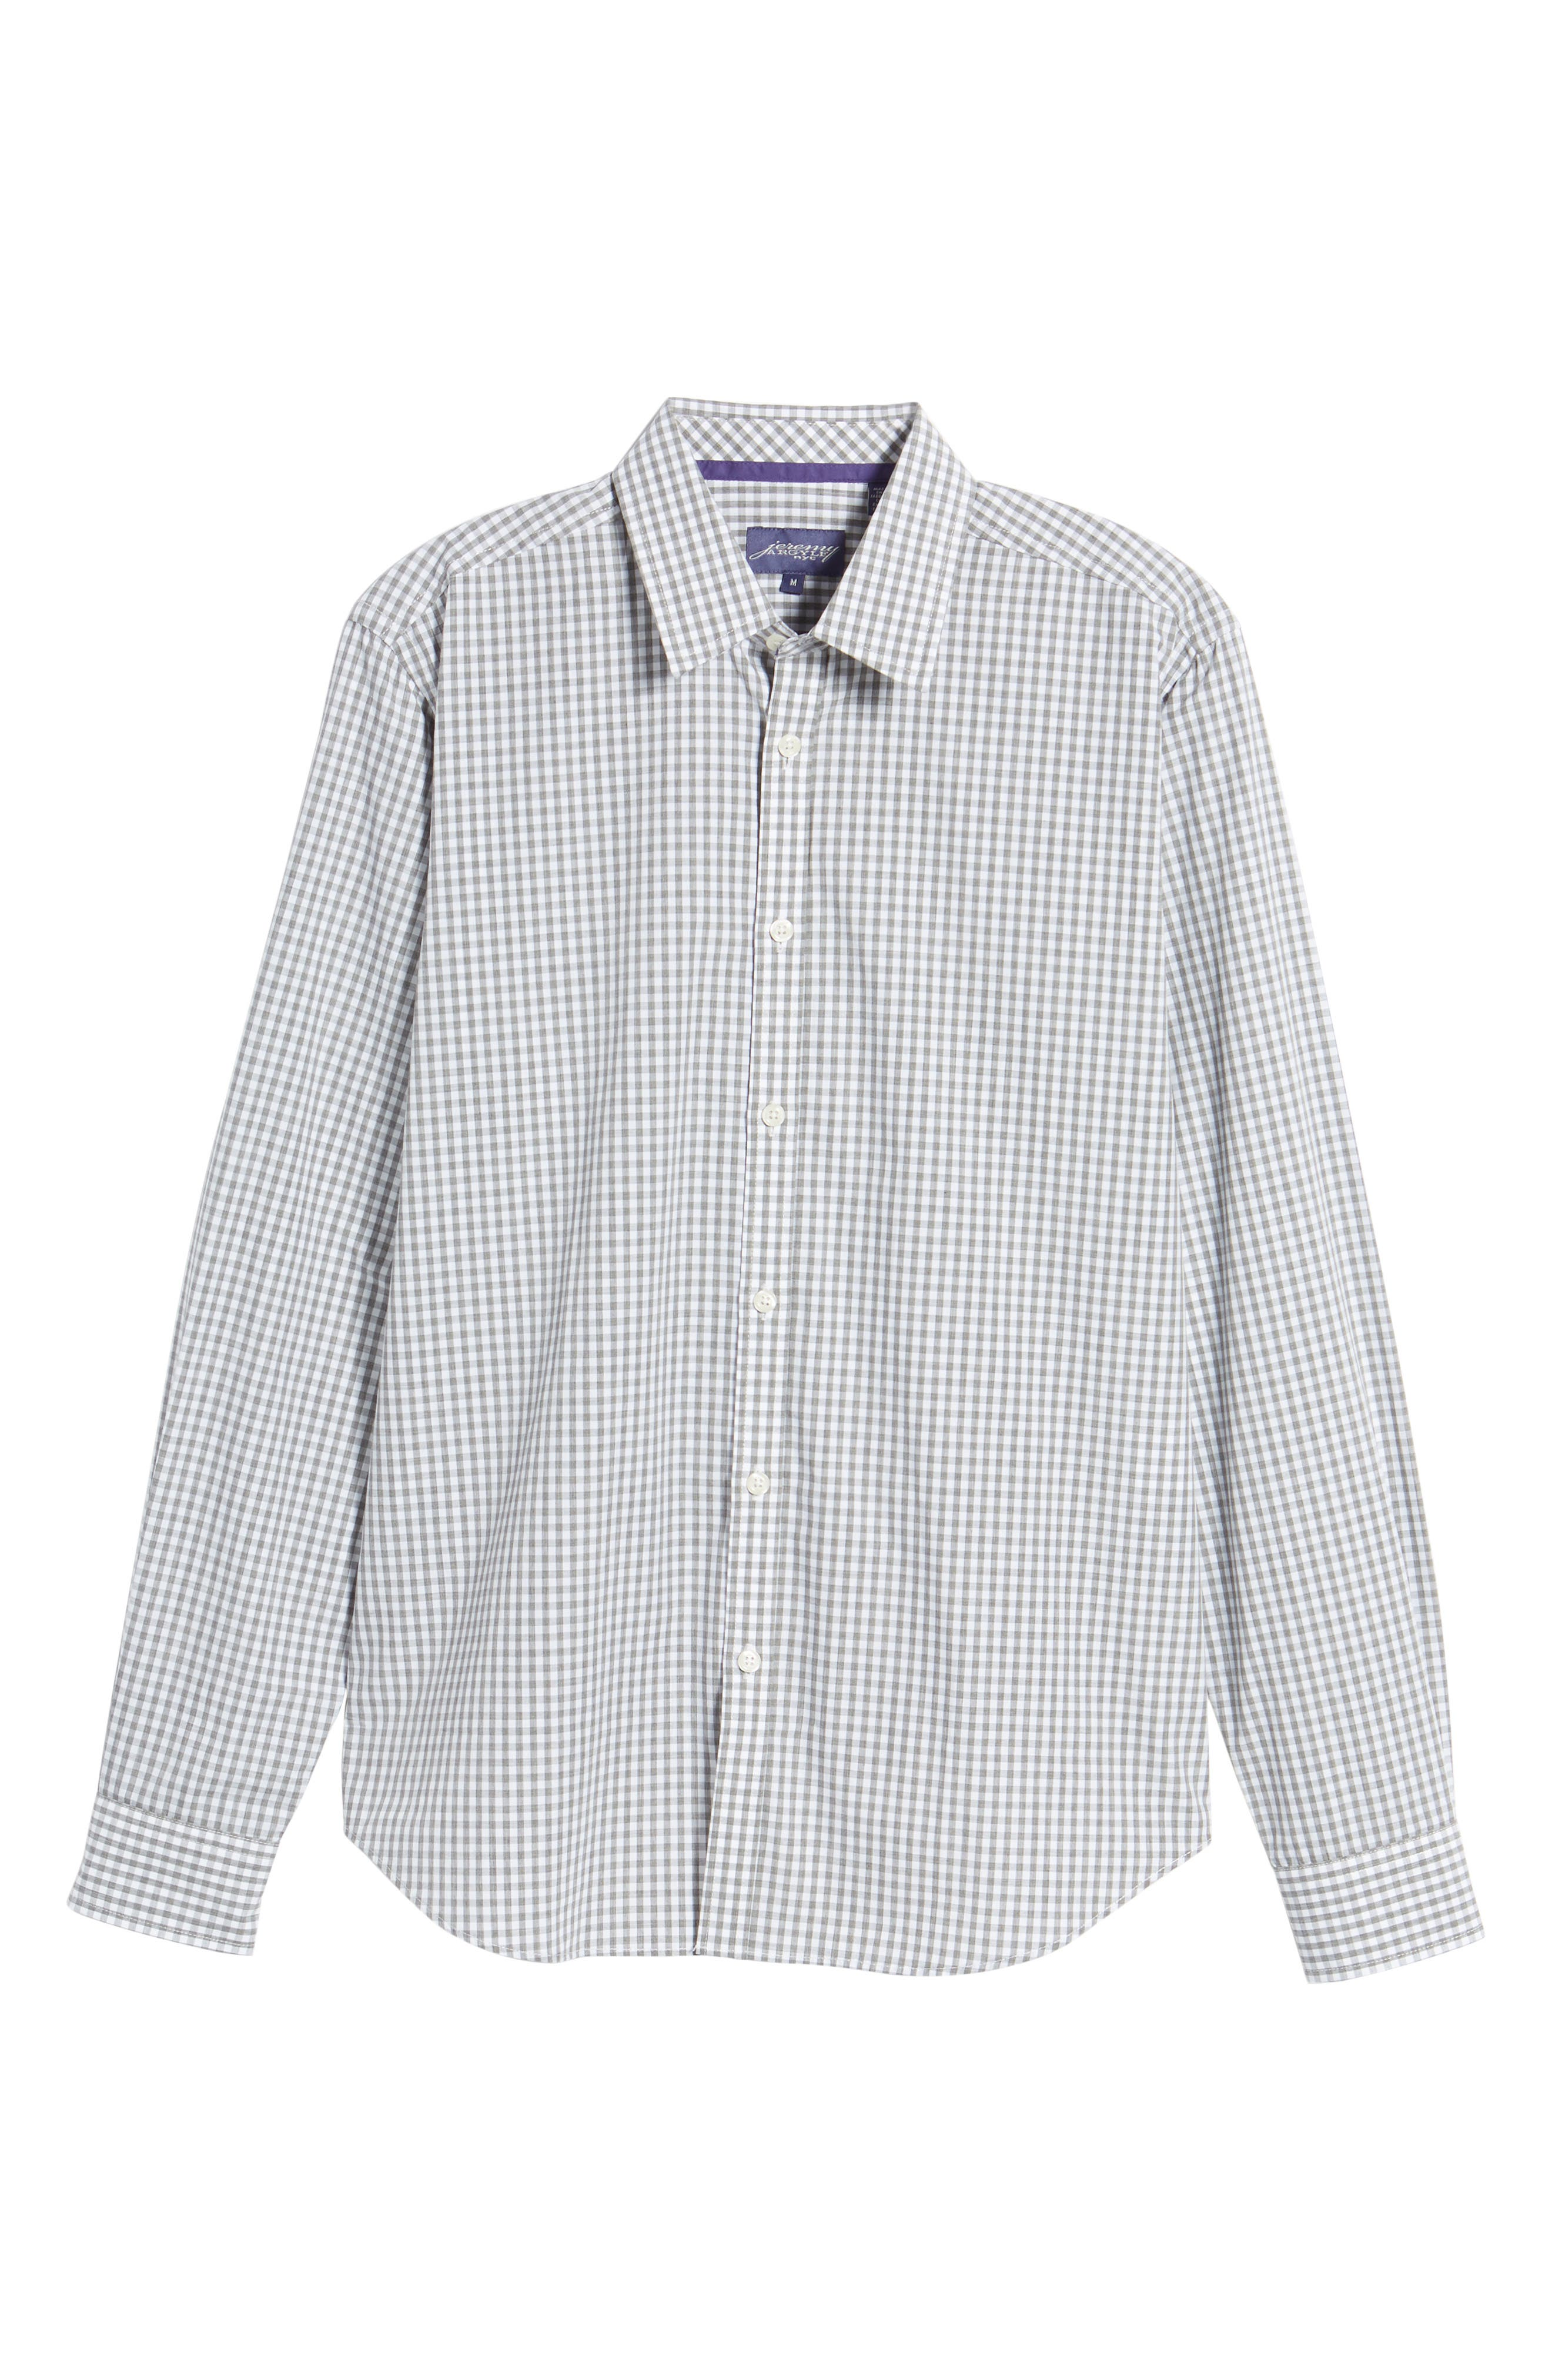 Fitted Check Sport Shirt,                             Alternate thumbnail 6, color,                             Medium Grey